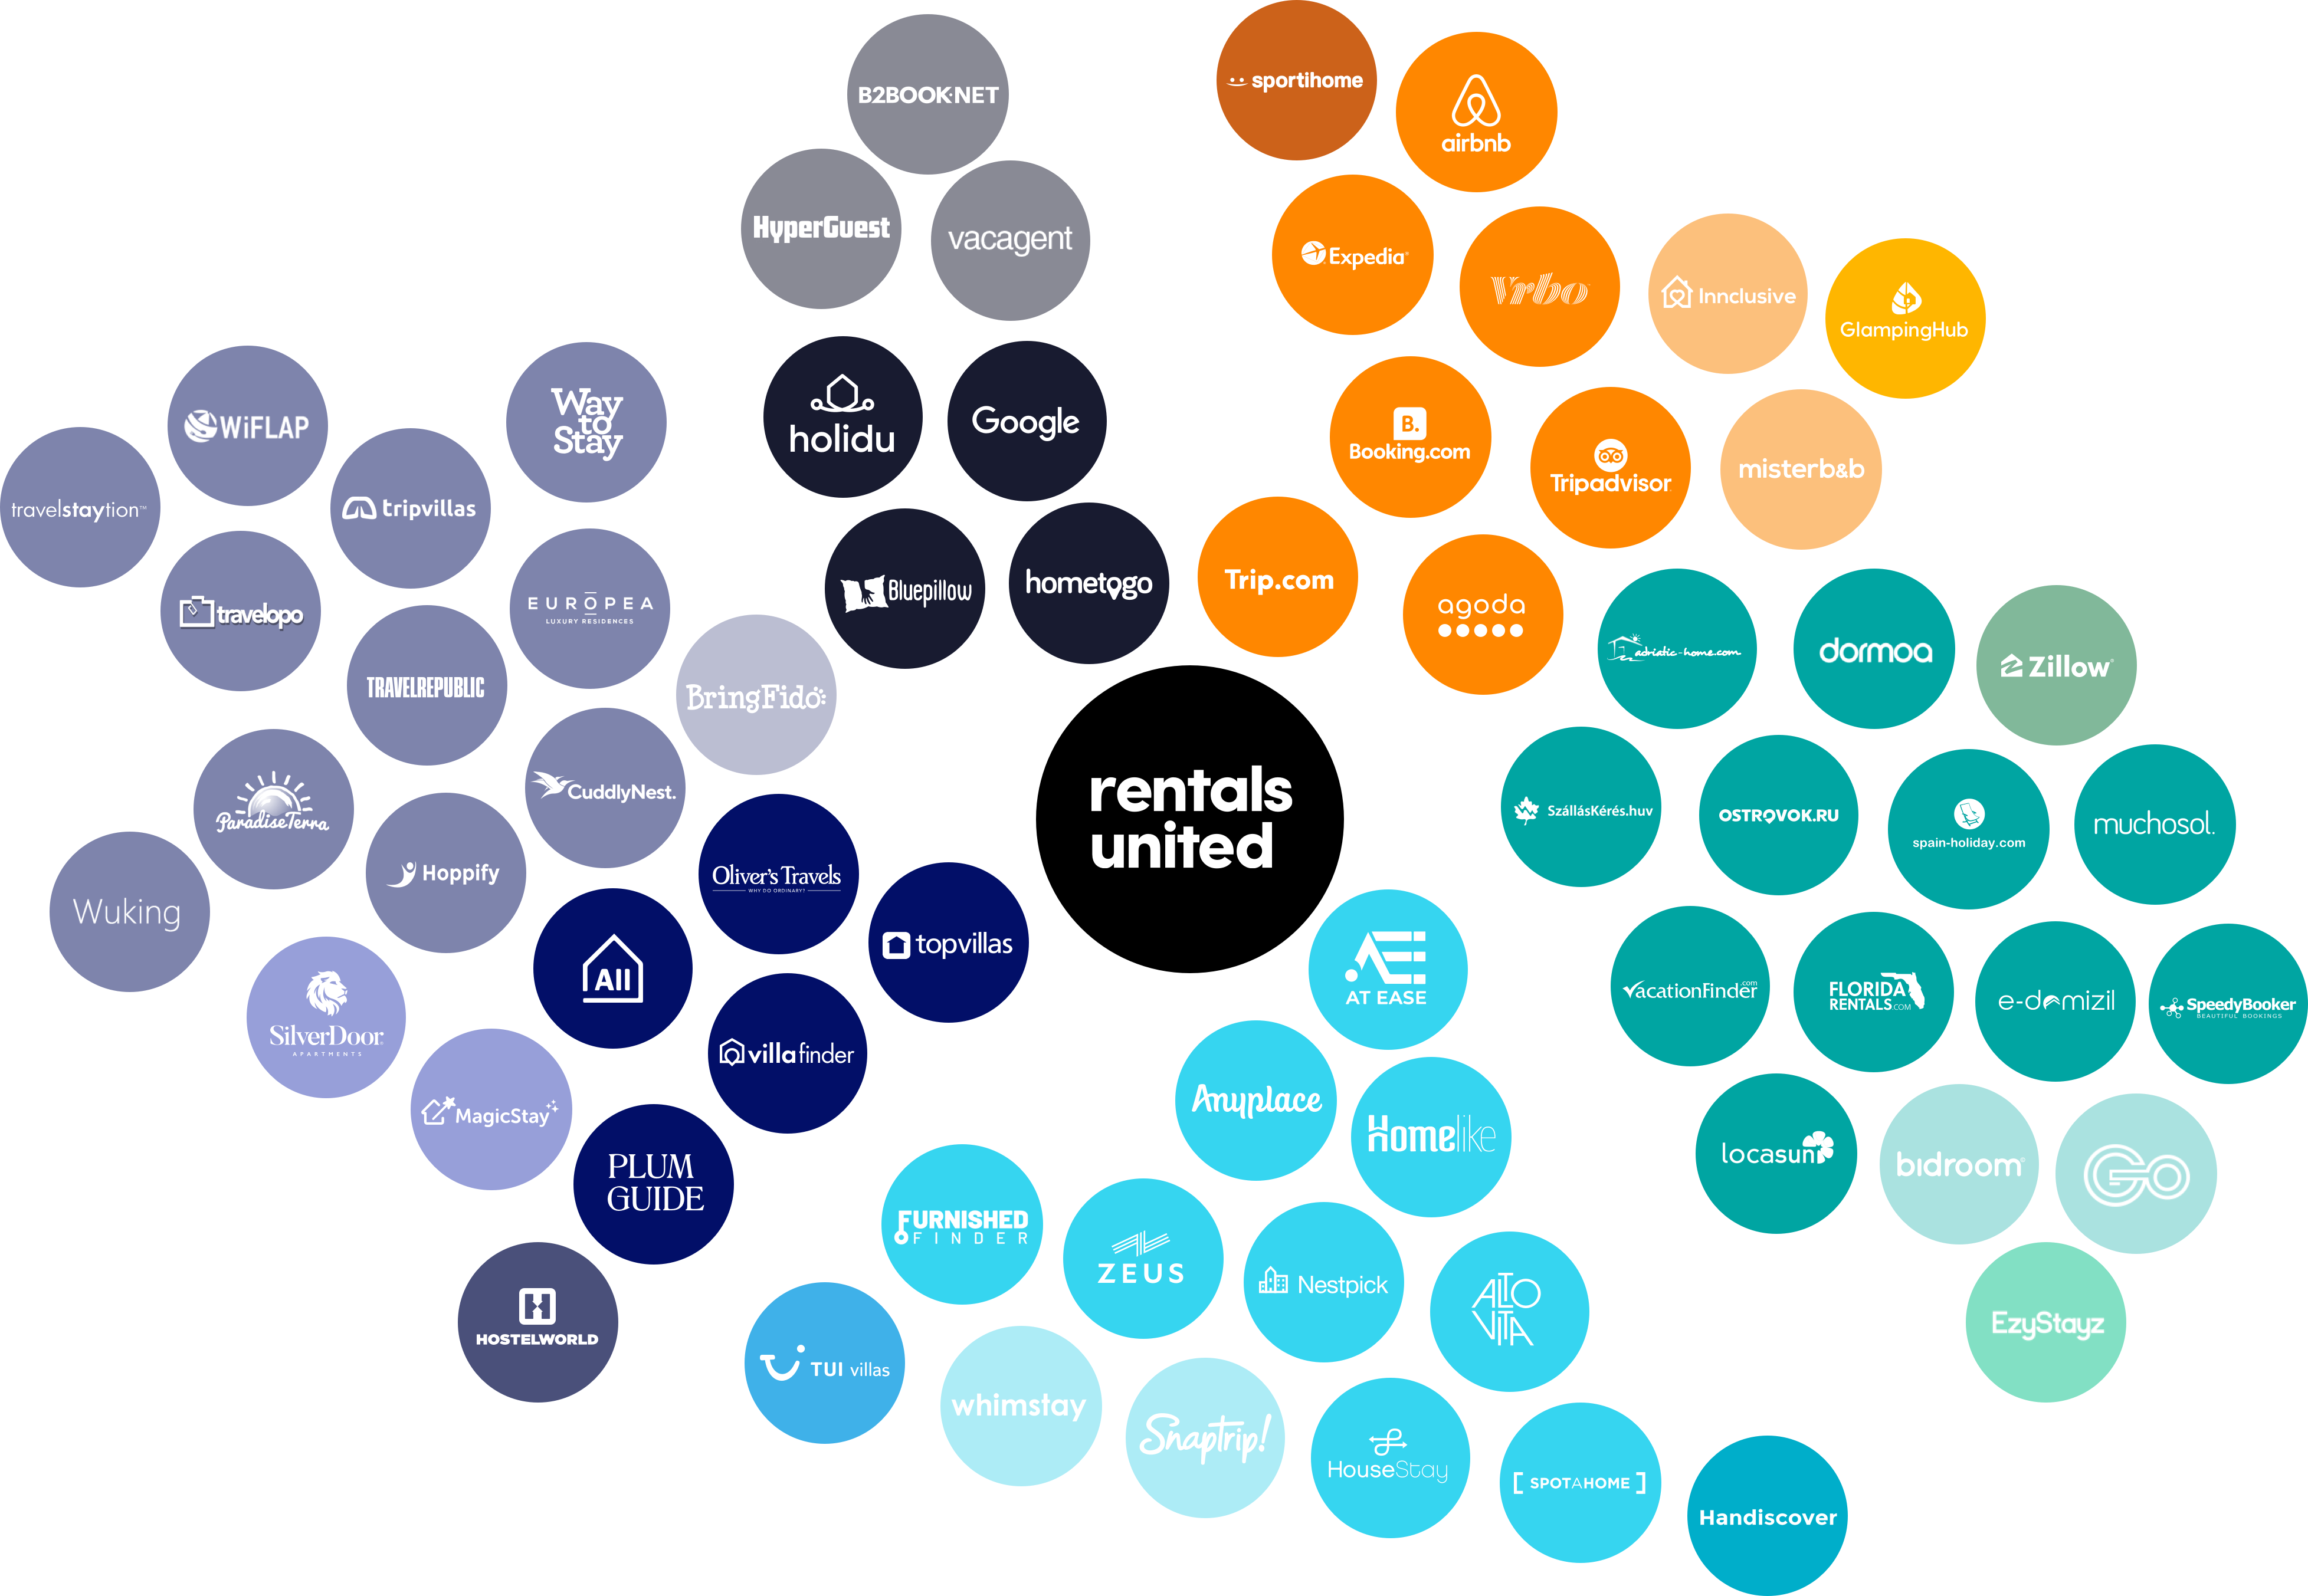 Rentals United works with over 60 Listing Sites